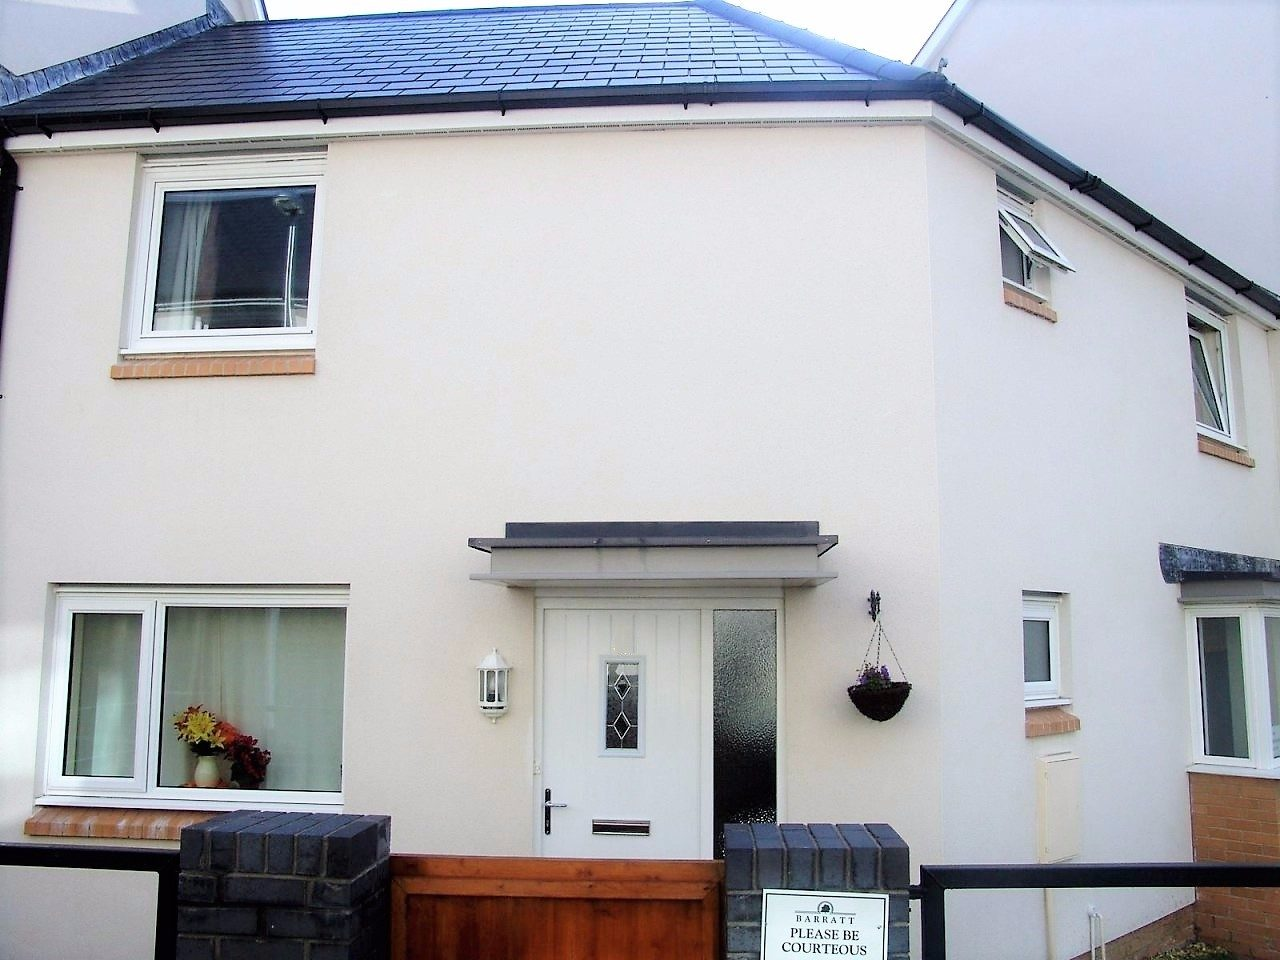 Beautiful 3 Bedroom House for Rent in Copper Quarter, Swansea - The